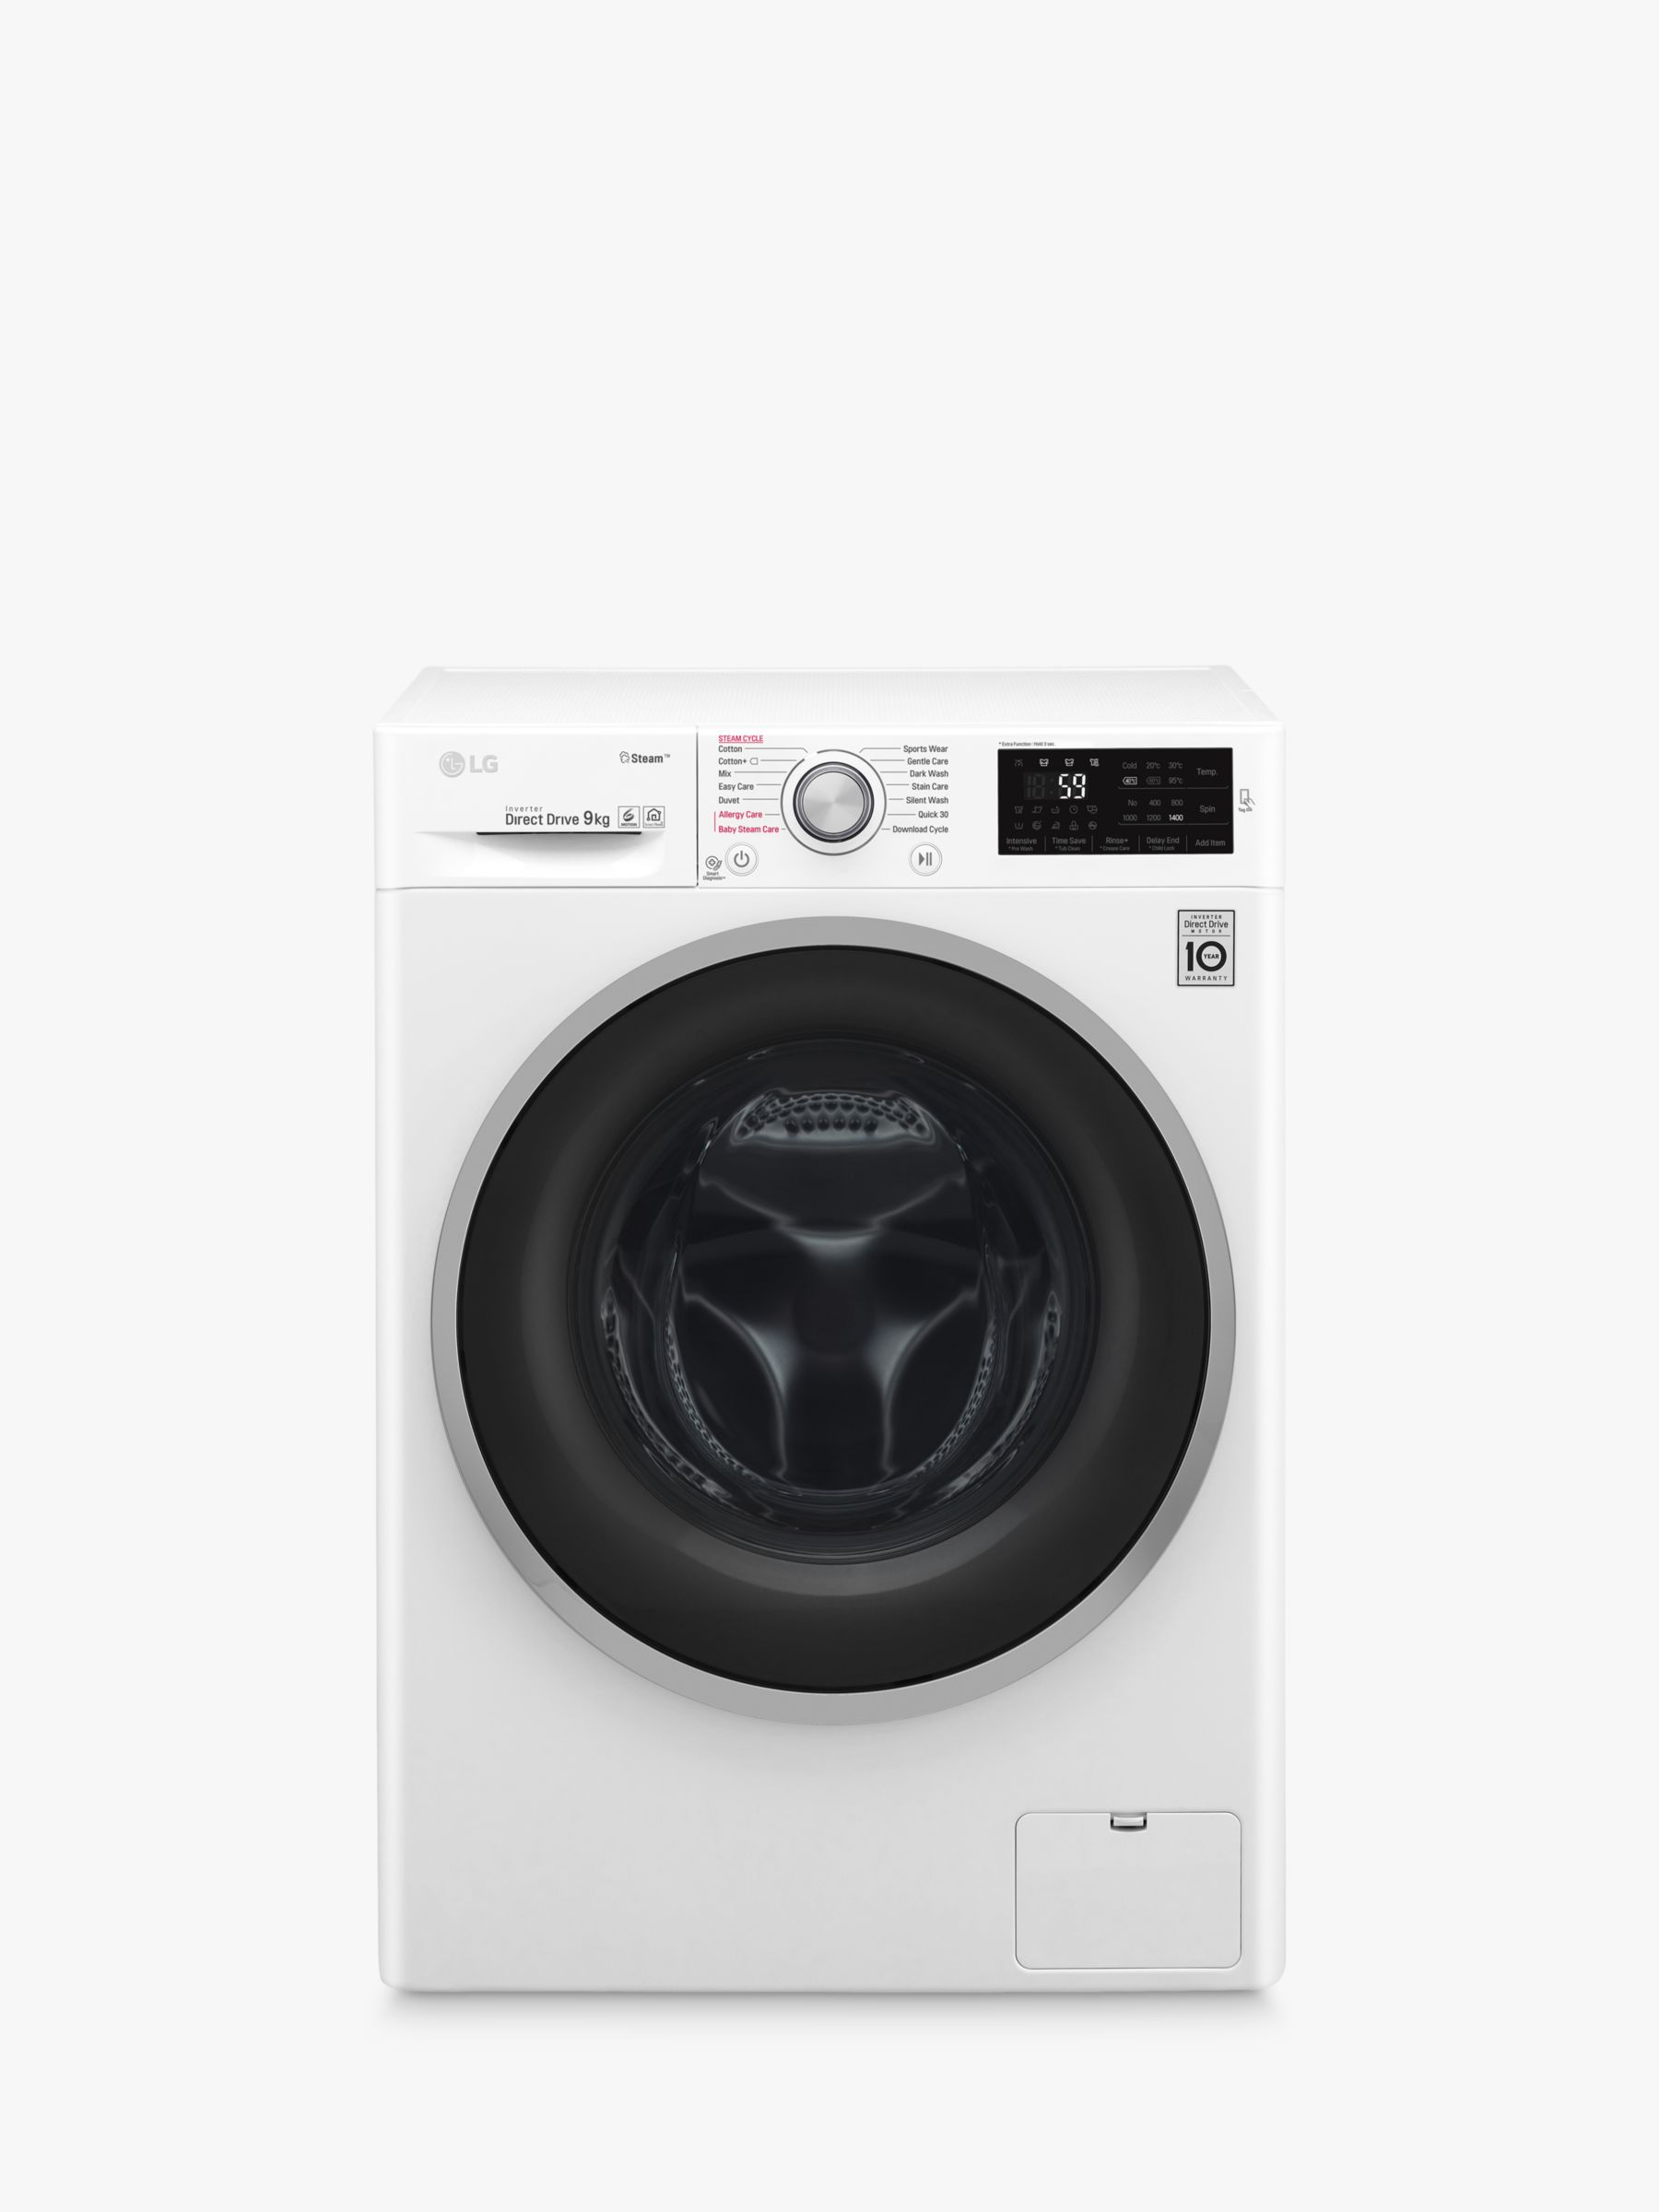 LG LG F4J609WS Freestanding Washing Machine, 9kg Load, A+++ Energy Rating, 1400rpm Spin, White